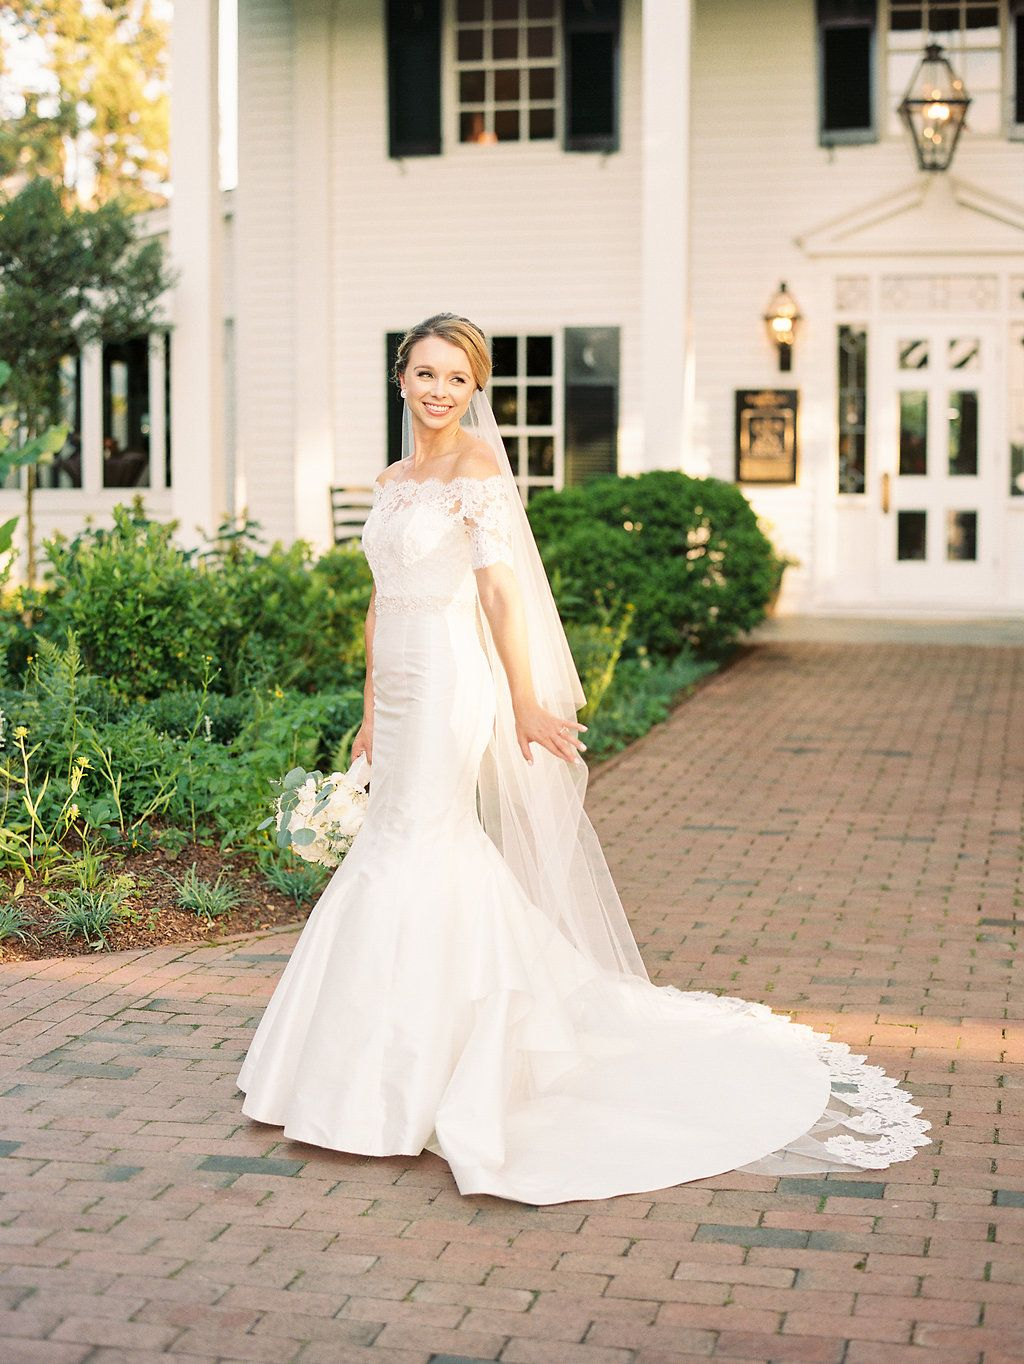 666742a4da1 SARAH BETH S FEARRINGTON VILLAGE BRIDAL PORTRAITS